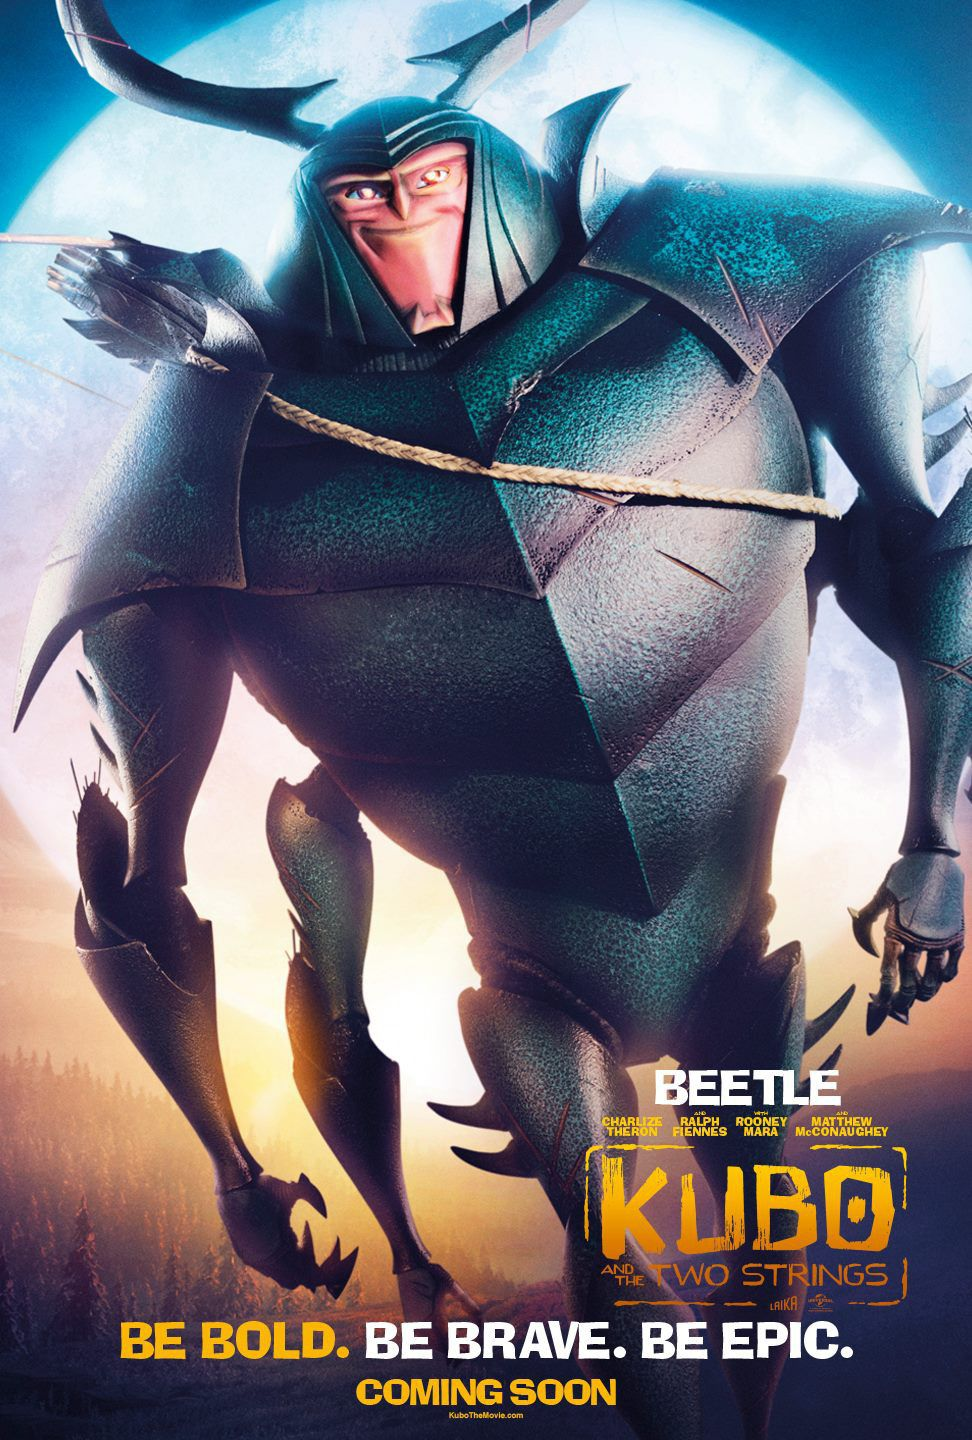 Kubo and the two Strings - Beetle